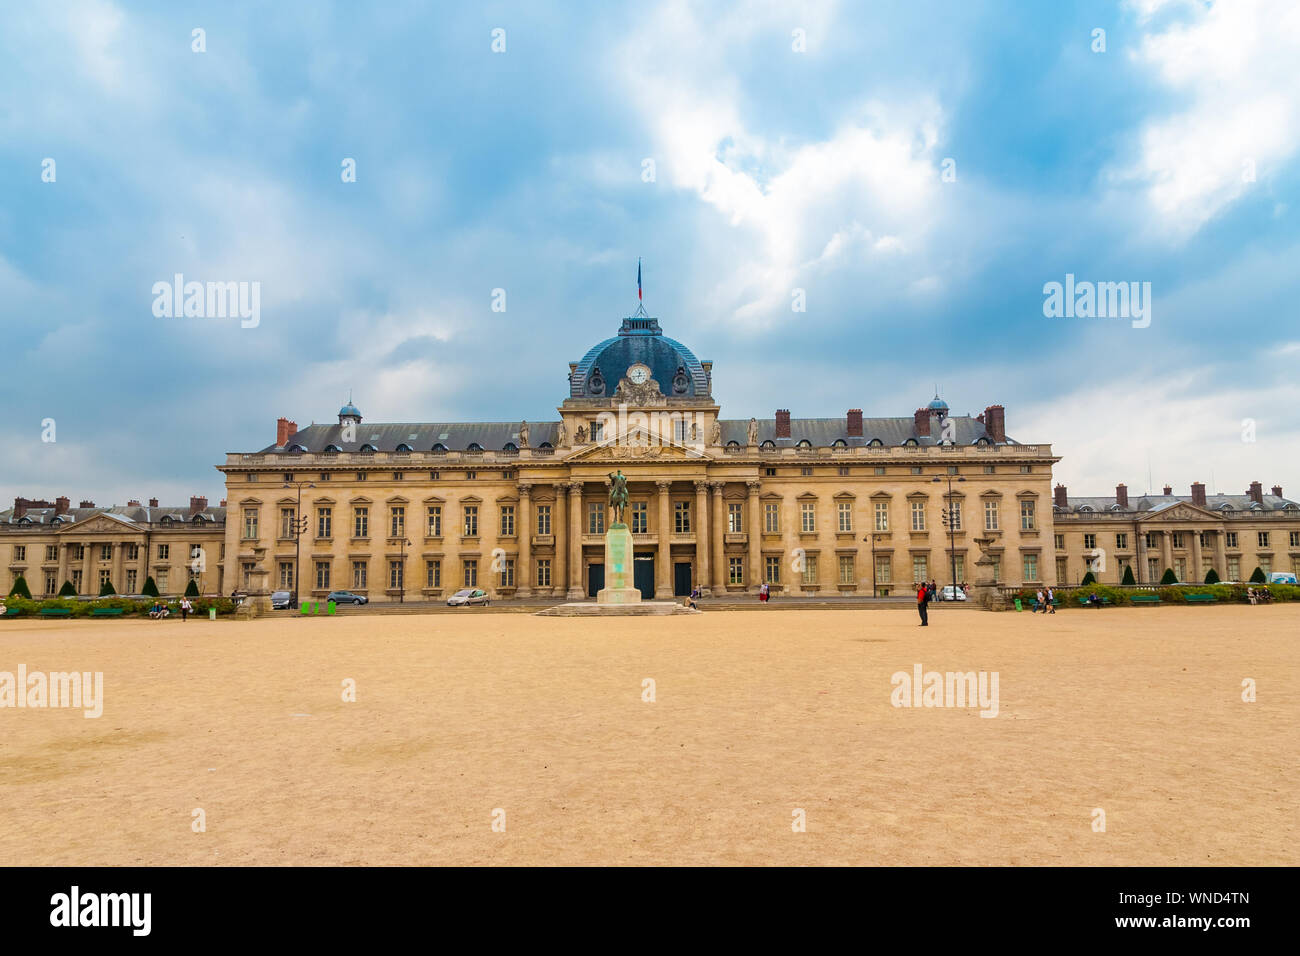 Great panoramic view of the École Militaire (military school) in Paris at the opposite end of the Champ-de-Mars park on a cloudy day. Today it houses... Stock Photo